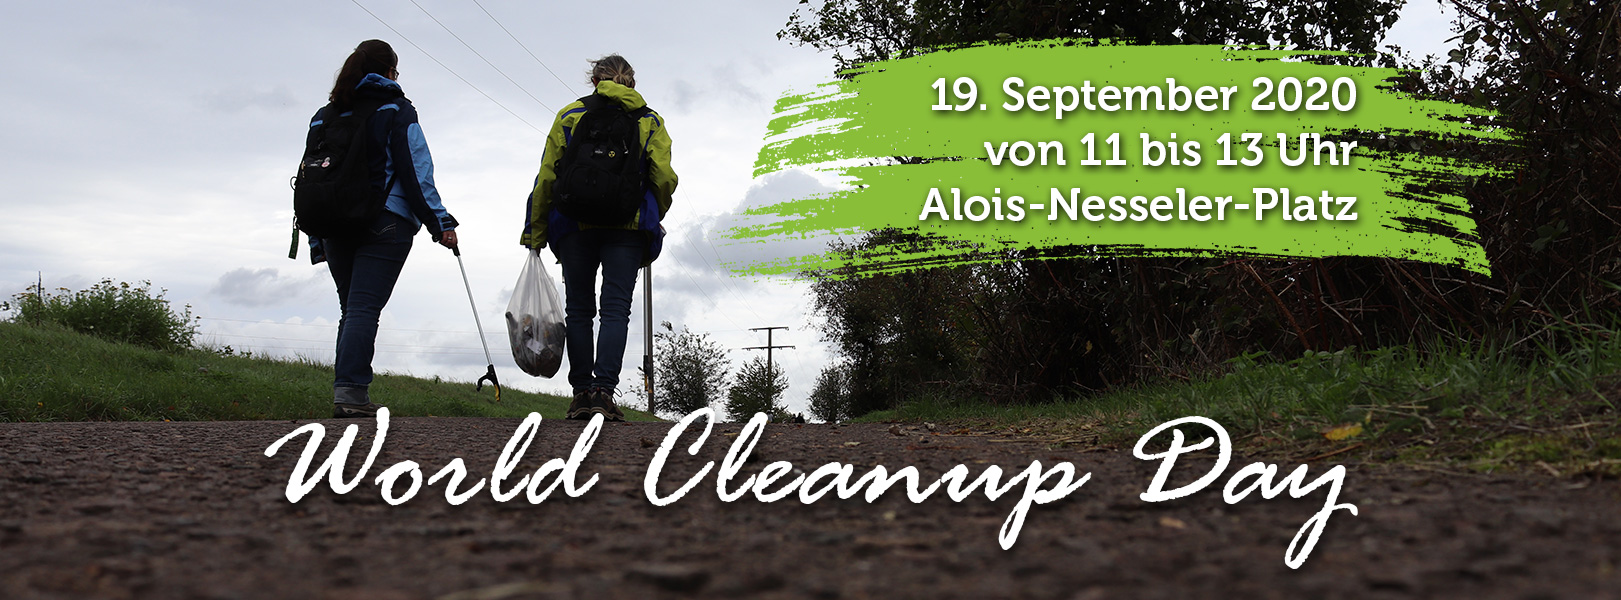 World Cleanup Day 2020 in Bexbach (Saarland)